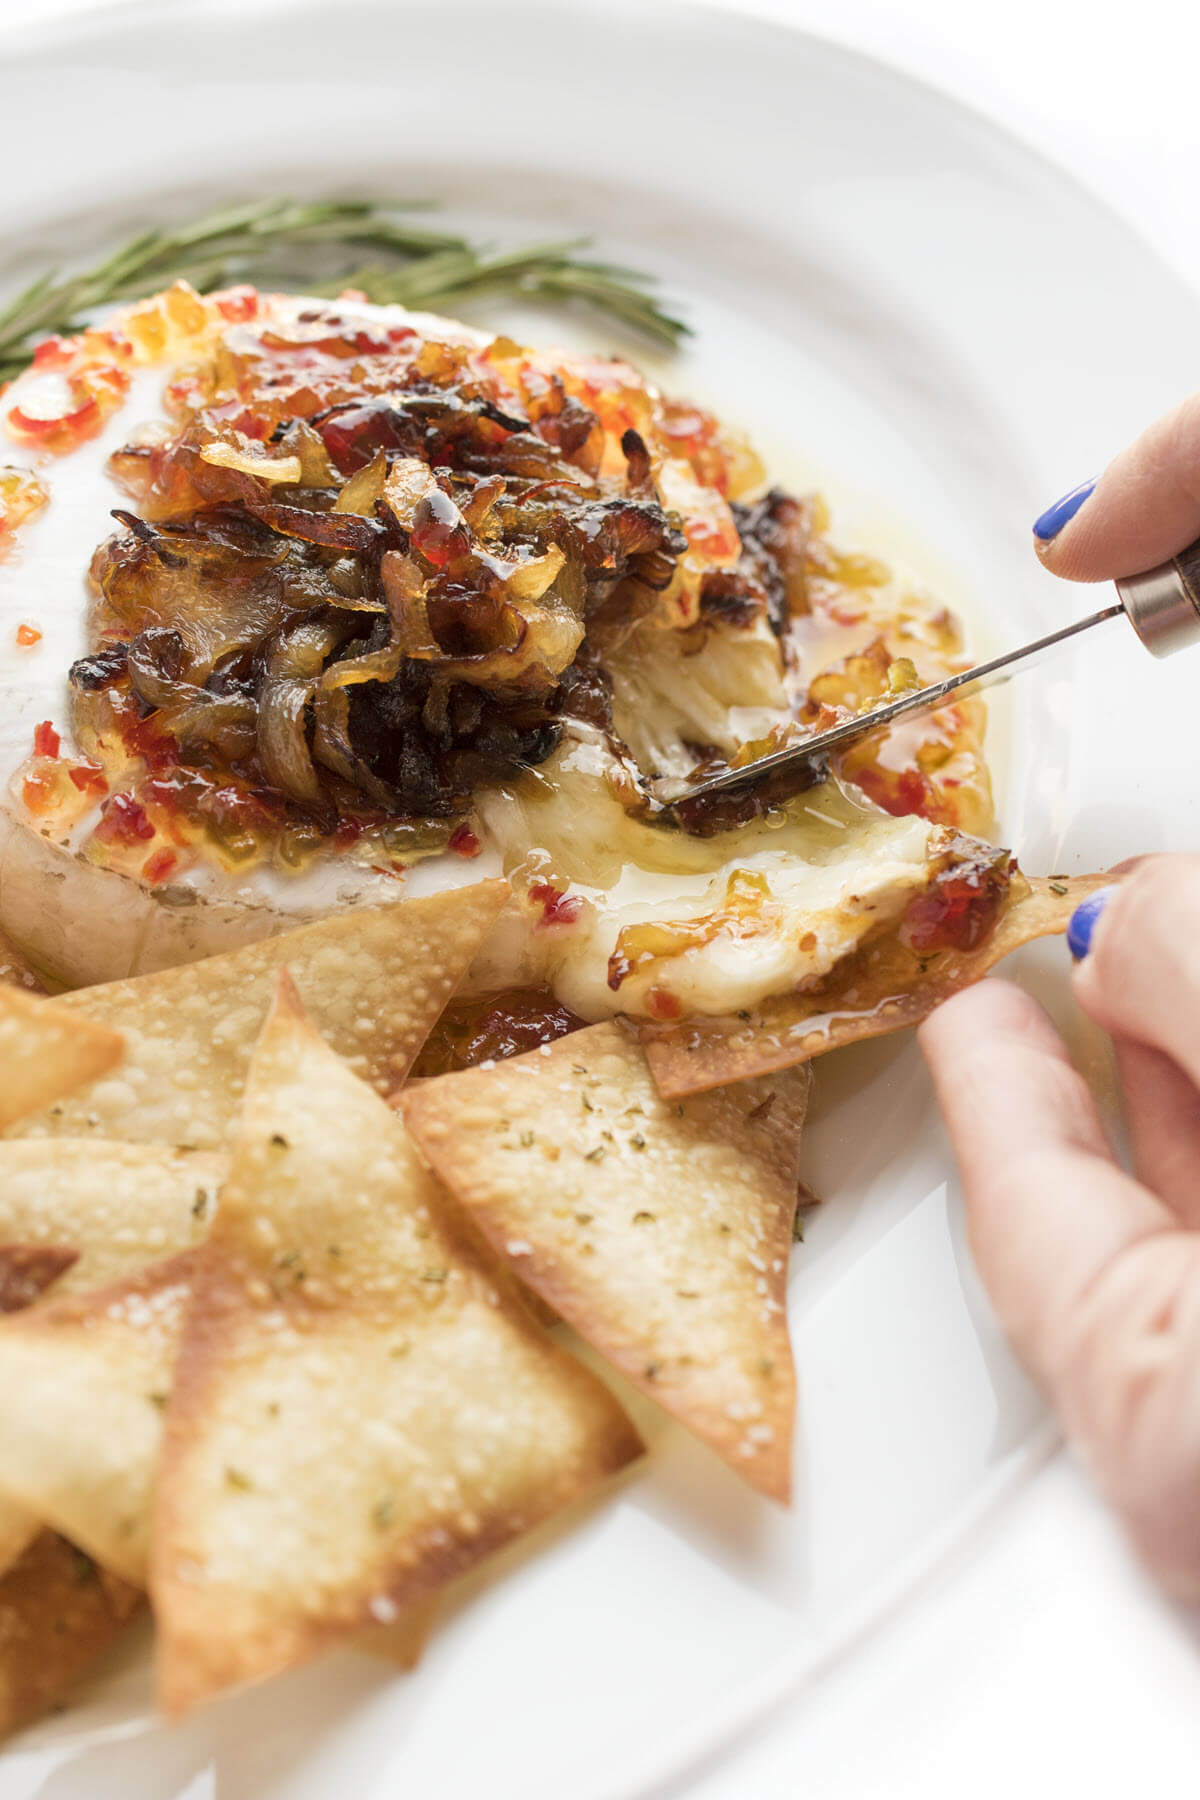 Baked Brie Appetizer with Caramelized Onions